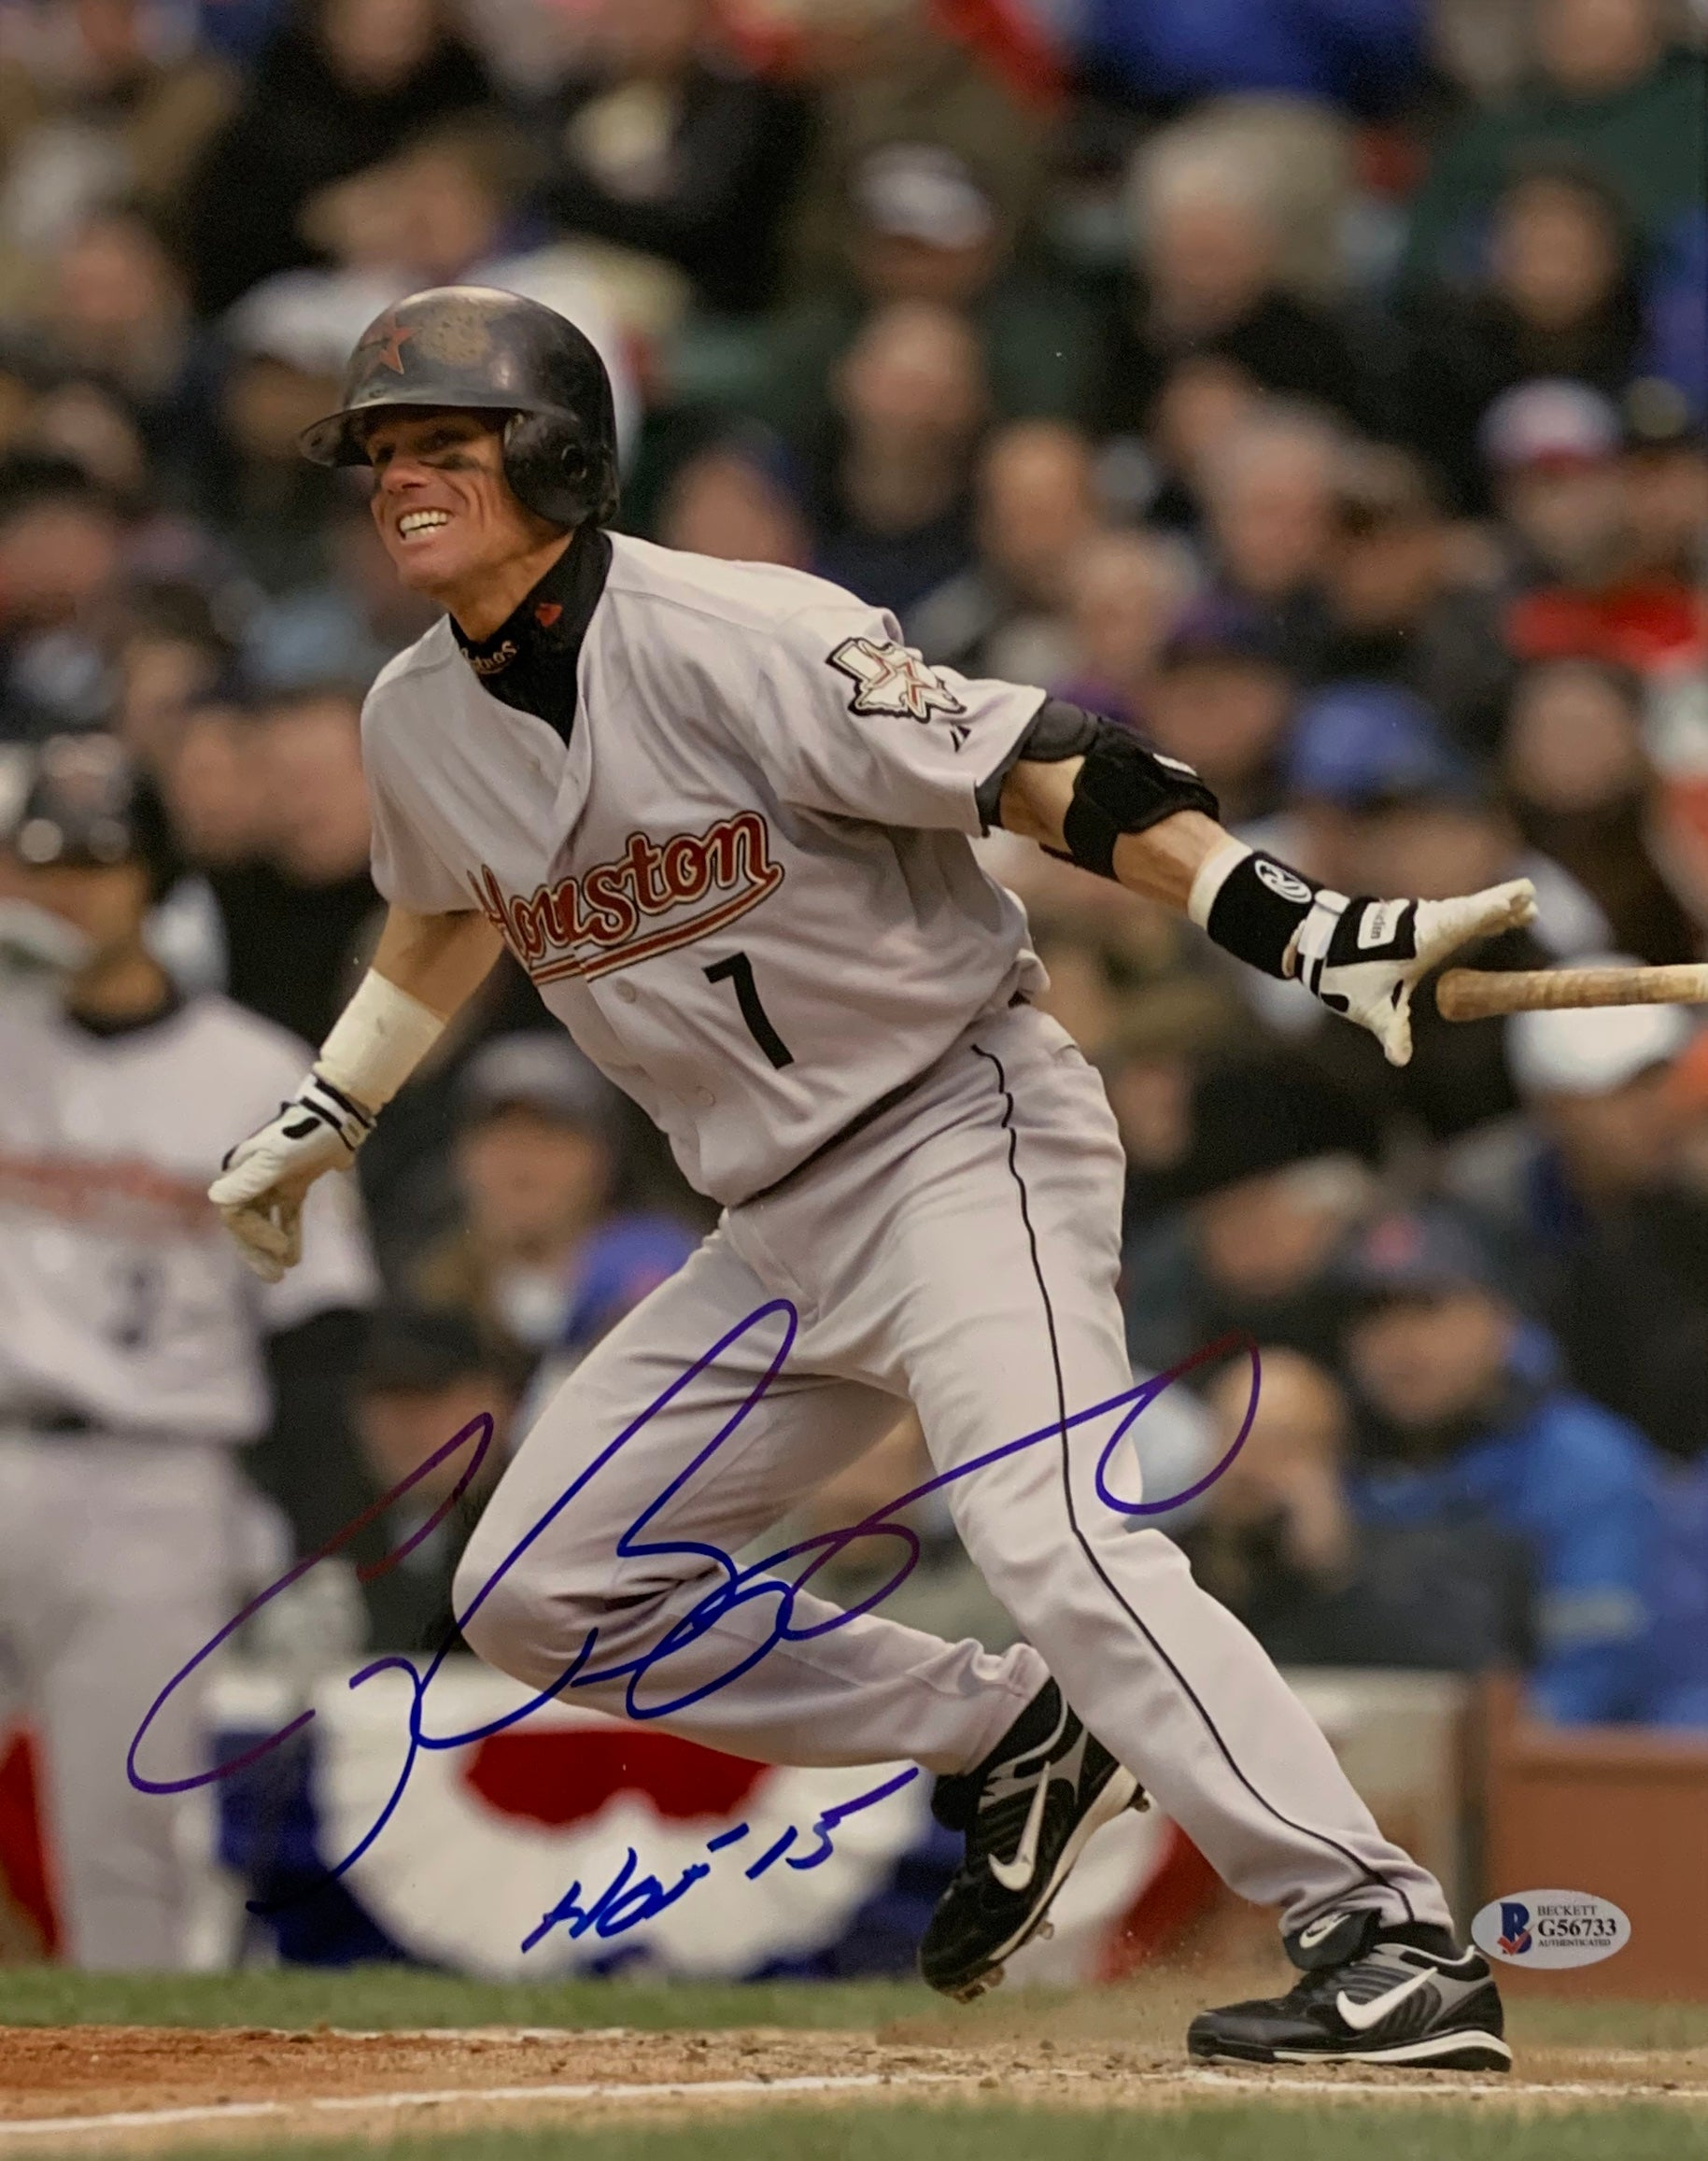 Craig Biggio Signed 11x14 Photo - Latitude Sports Marketing